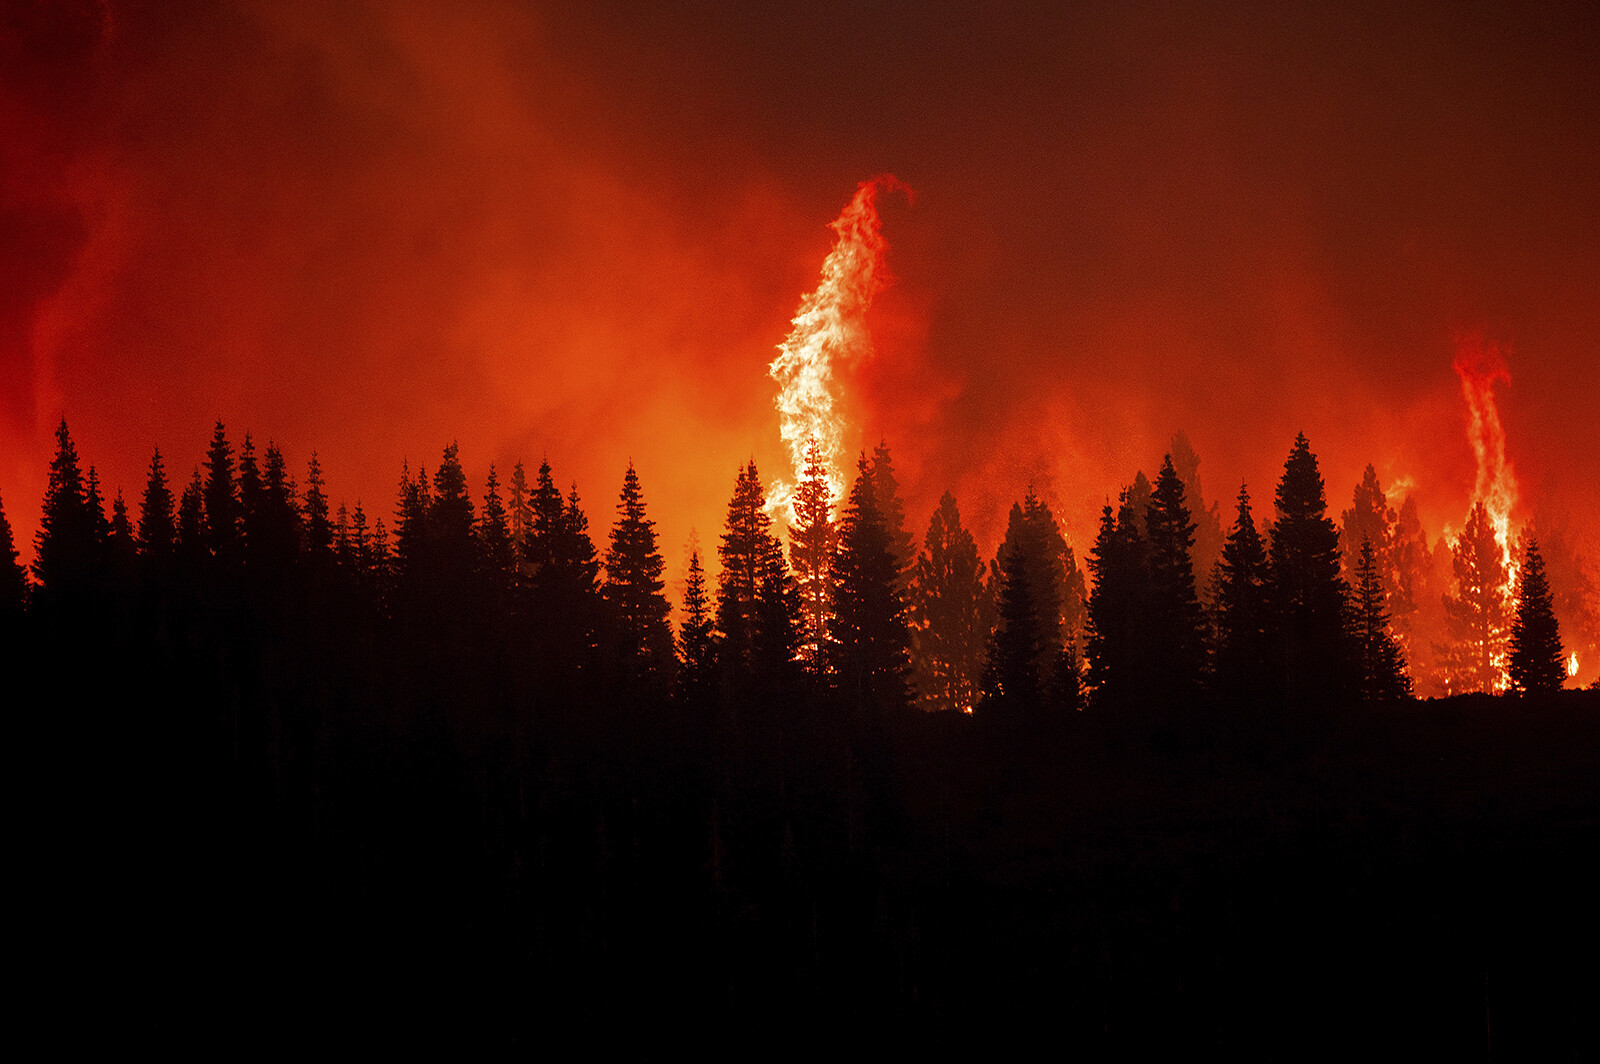 <i>Noah Berger/AP</i><br/>Flames from the Dixie Fire crest a hill in Lassen National Forest.